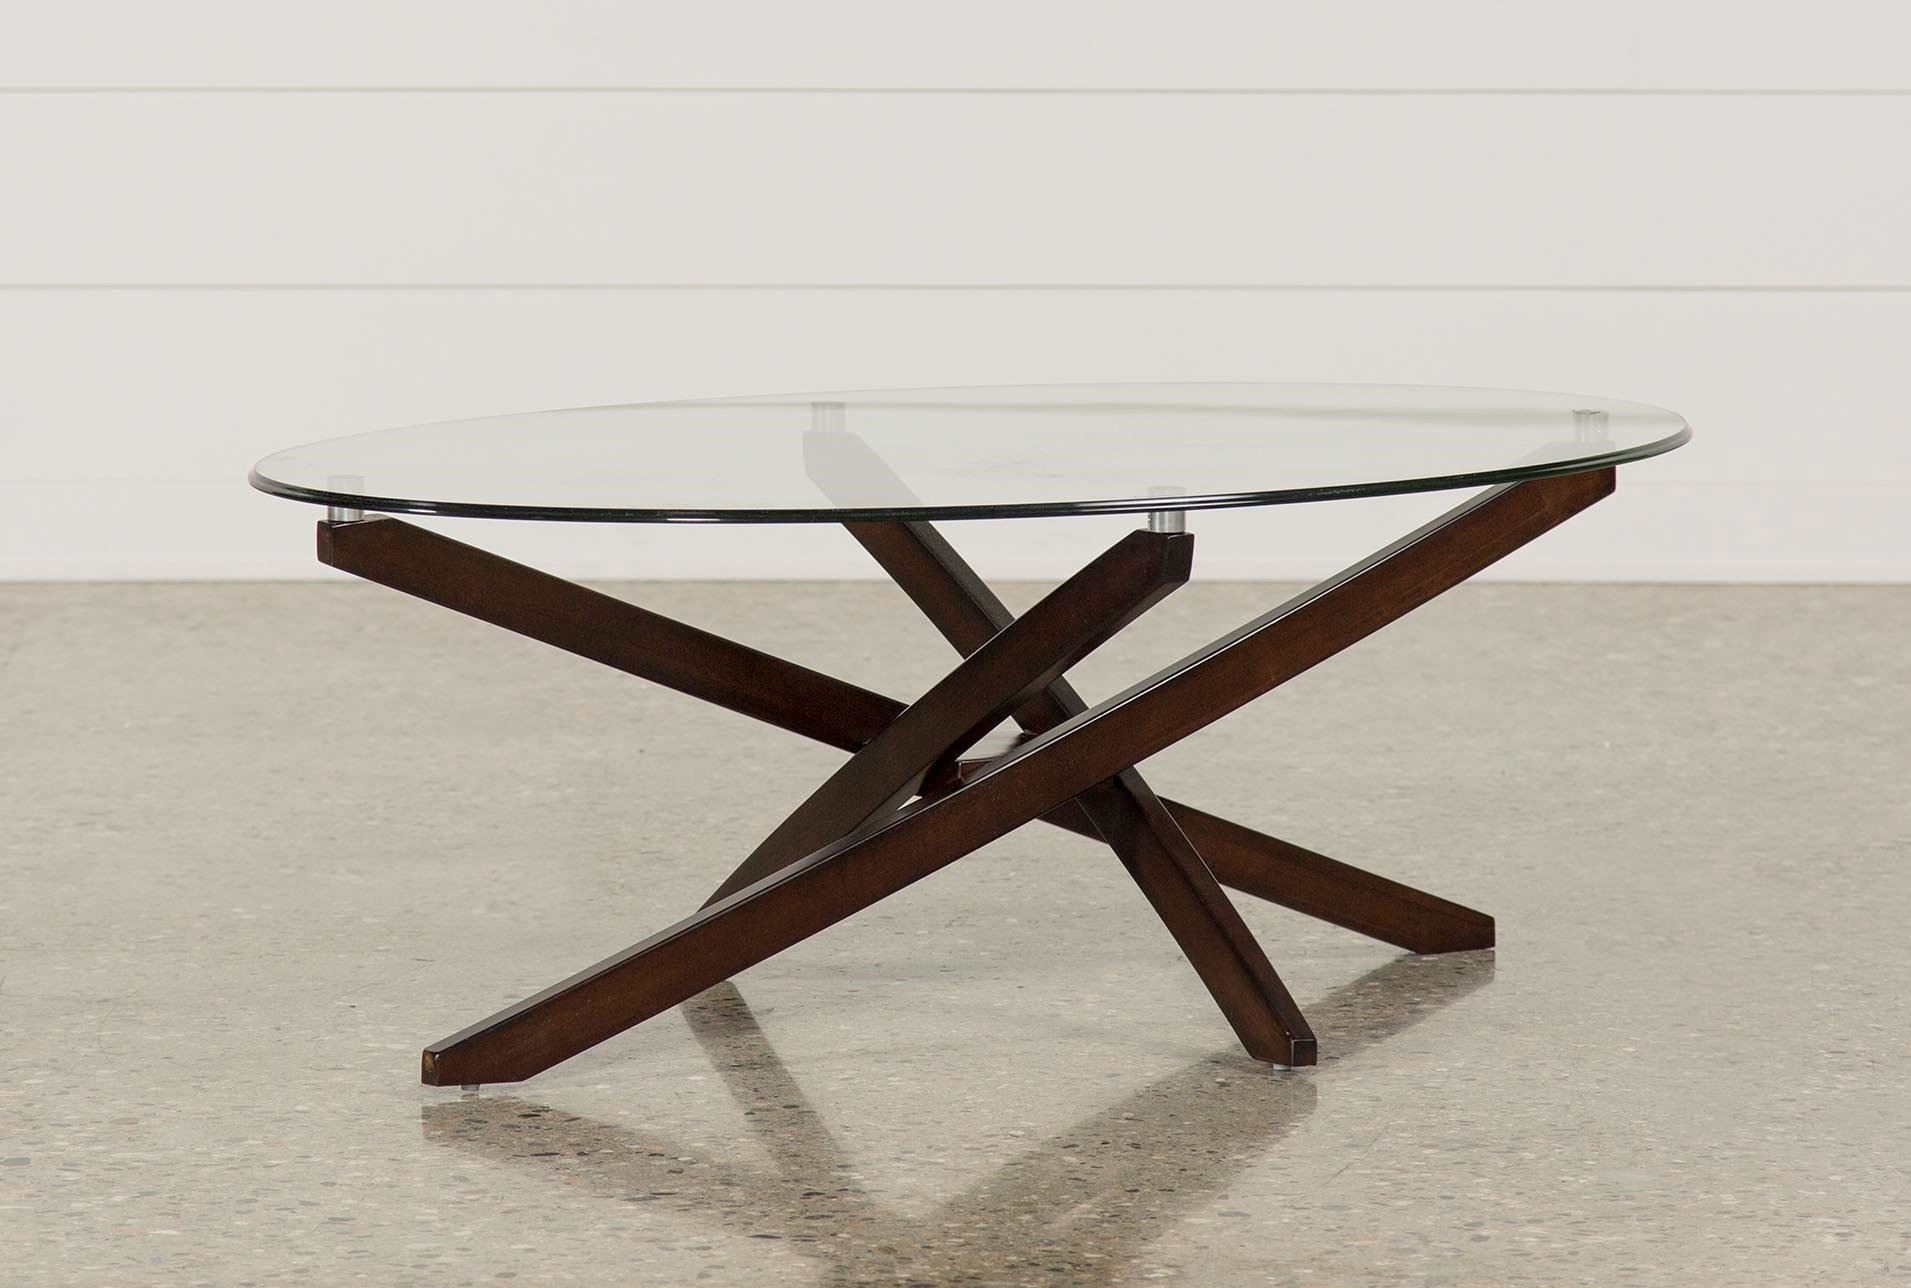 coffee tables fit your home decor living spaces unique glass end brisbane oval table narrow outdoor dining herrons furniture riverside dresser lamps for bedroom patio seat